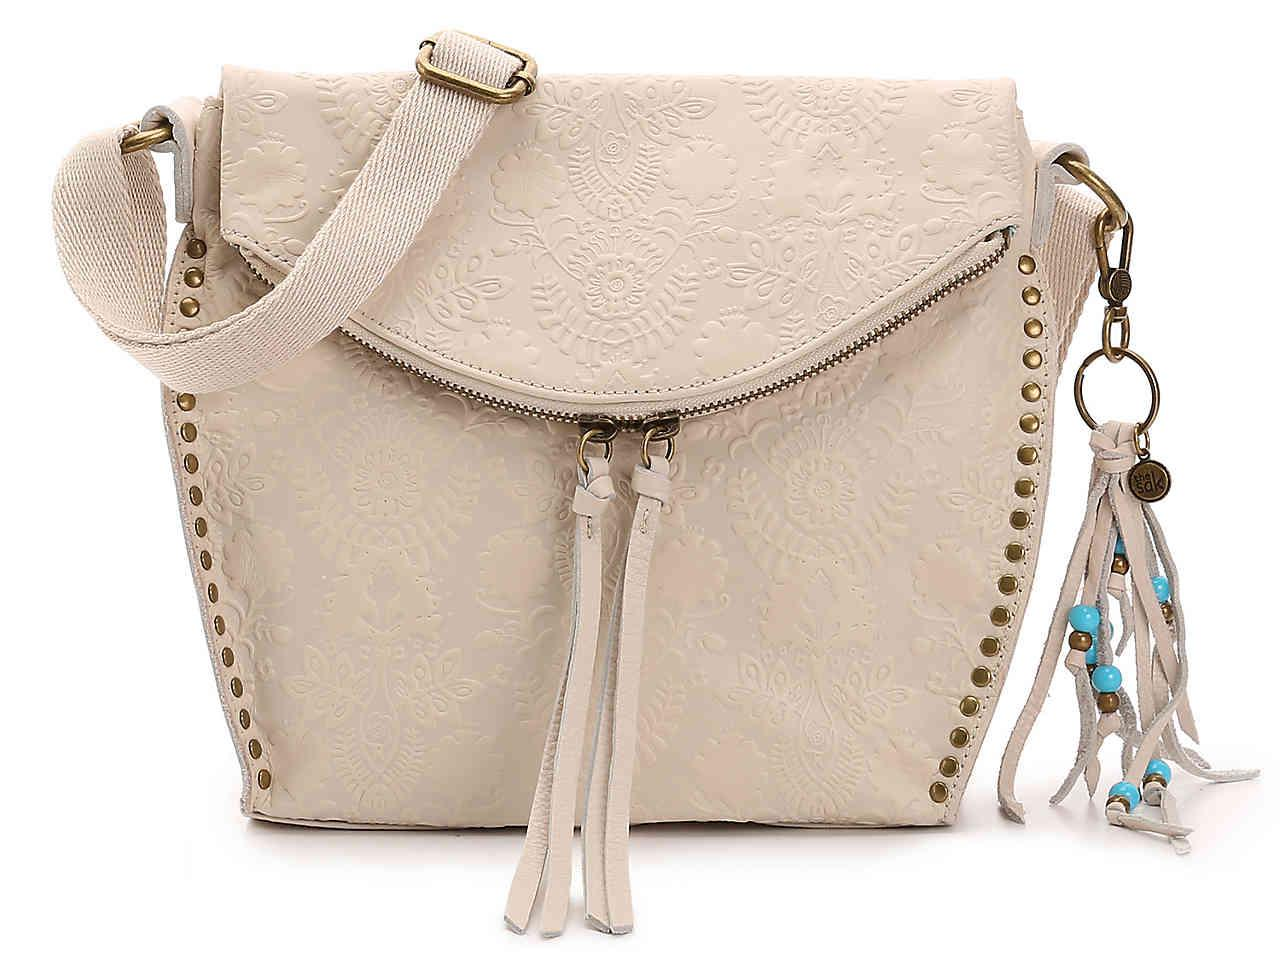 4e45a4c5f991 Lyst - The Sak Silverlake Leather Crossbody Bag in White